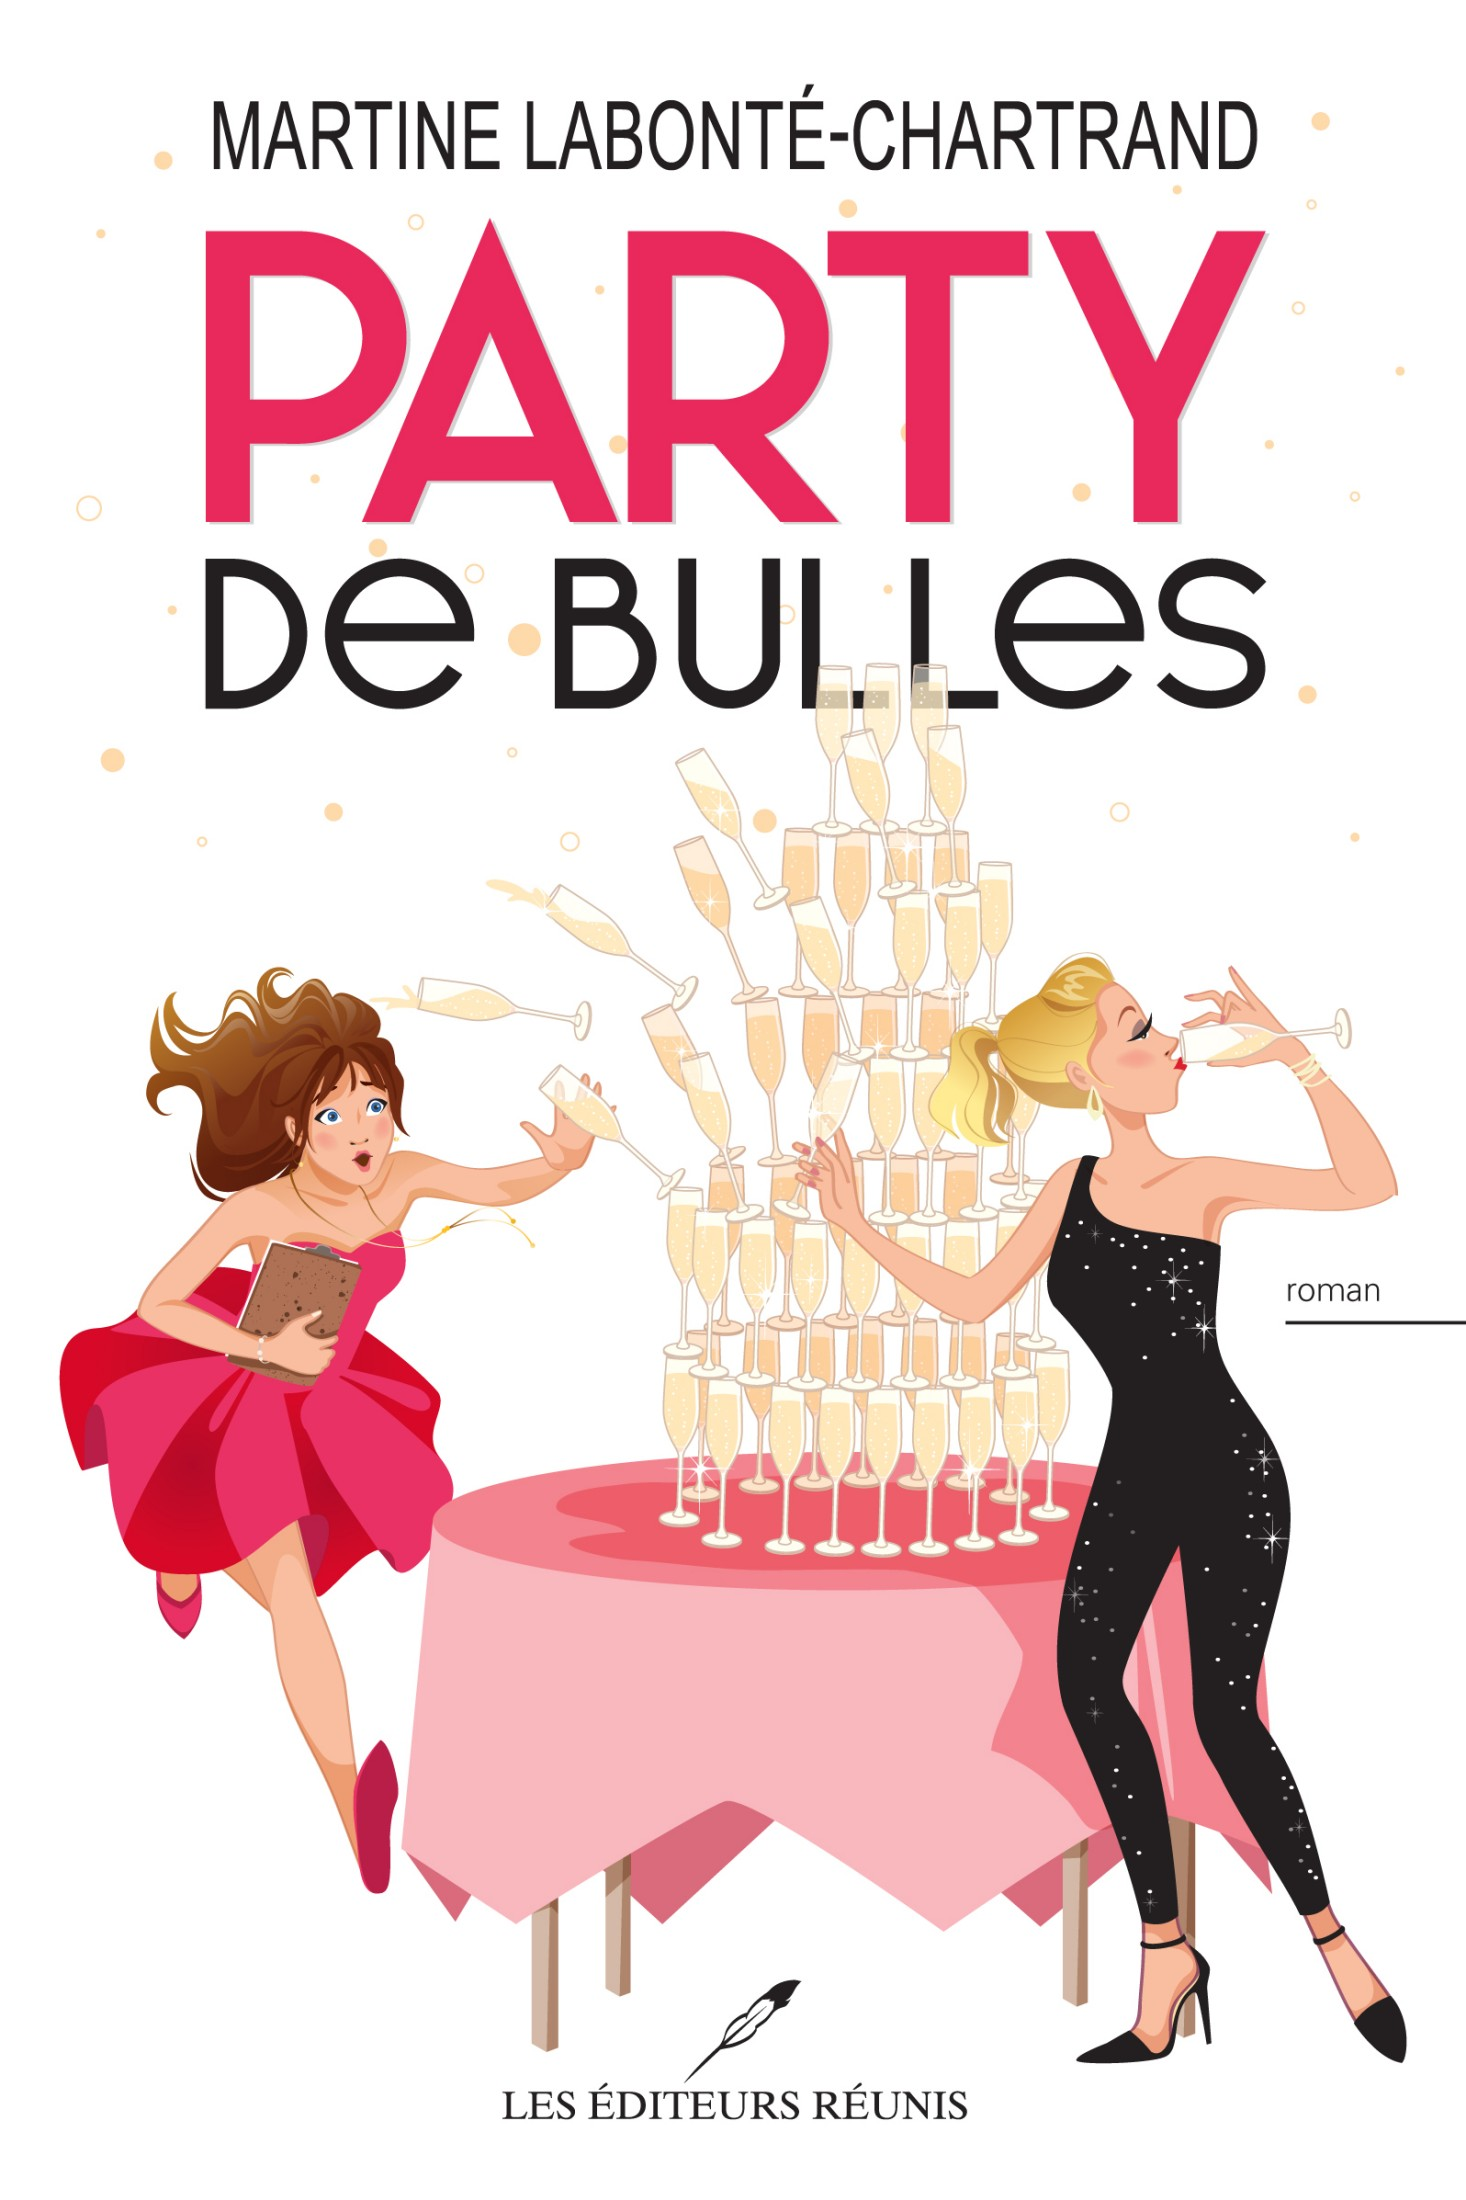 Party de bulles - Martine Labonté-Chartrand